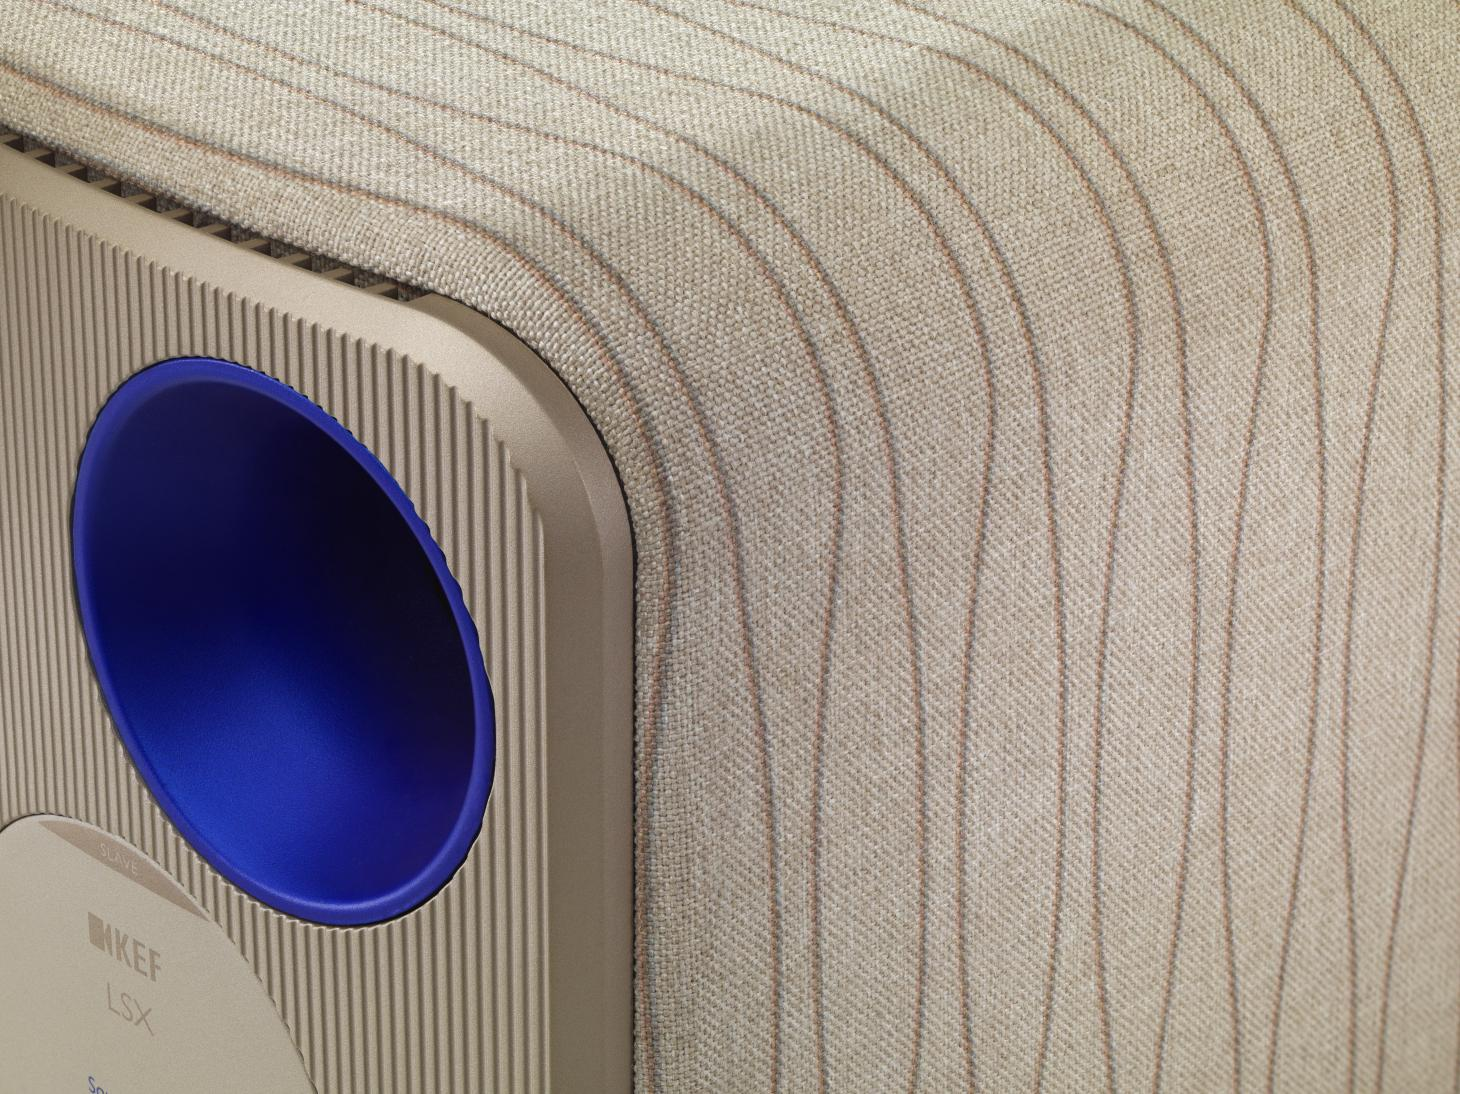 Conran KEF speakers